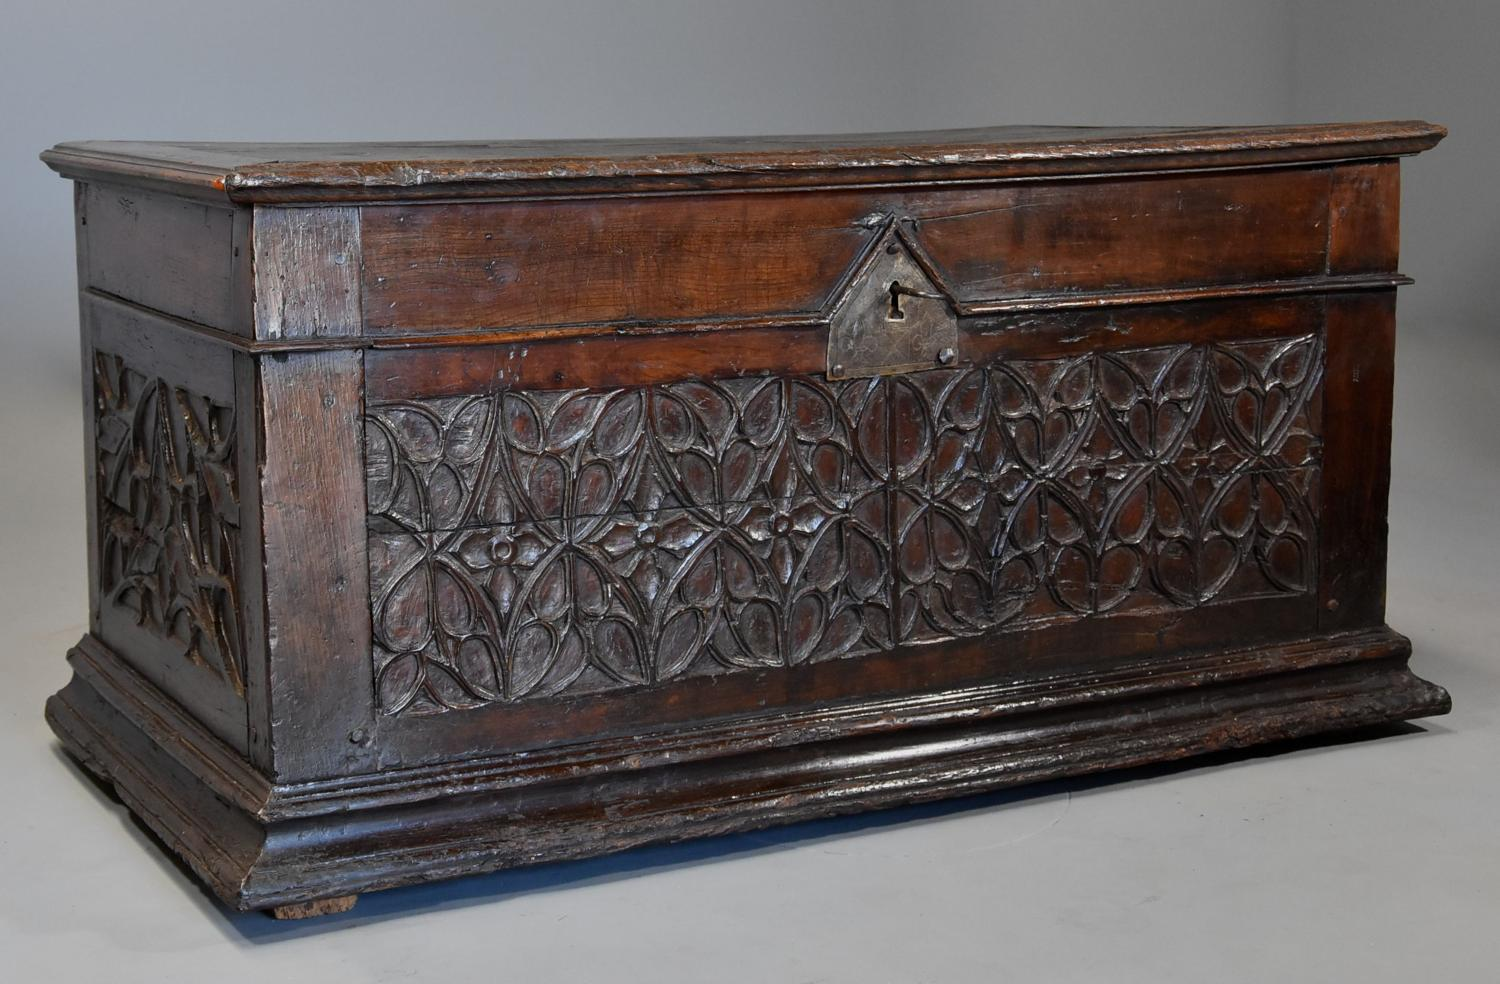 Extremely rare French early 16thc fruitwood coffer of superb patina